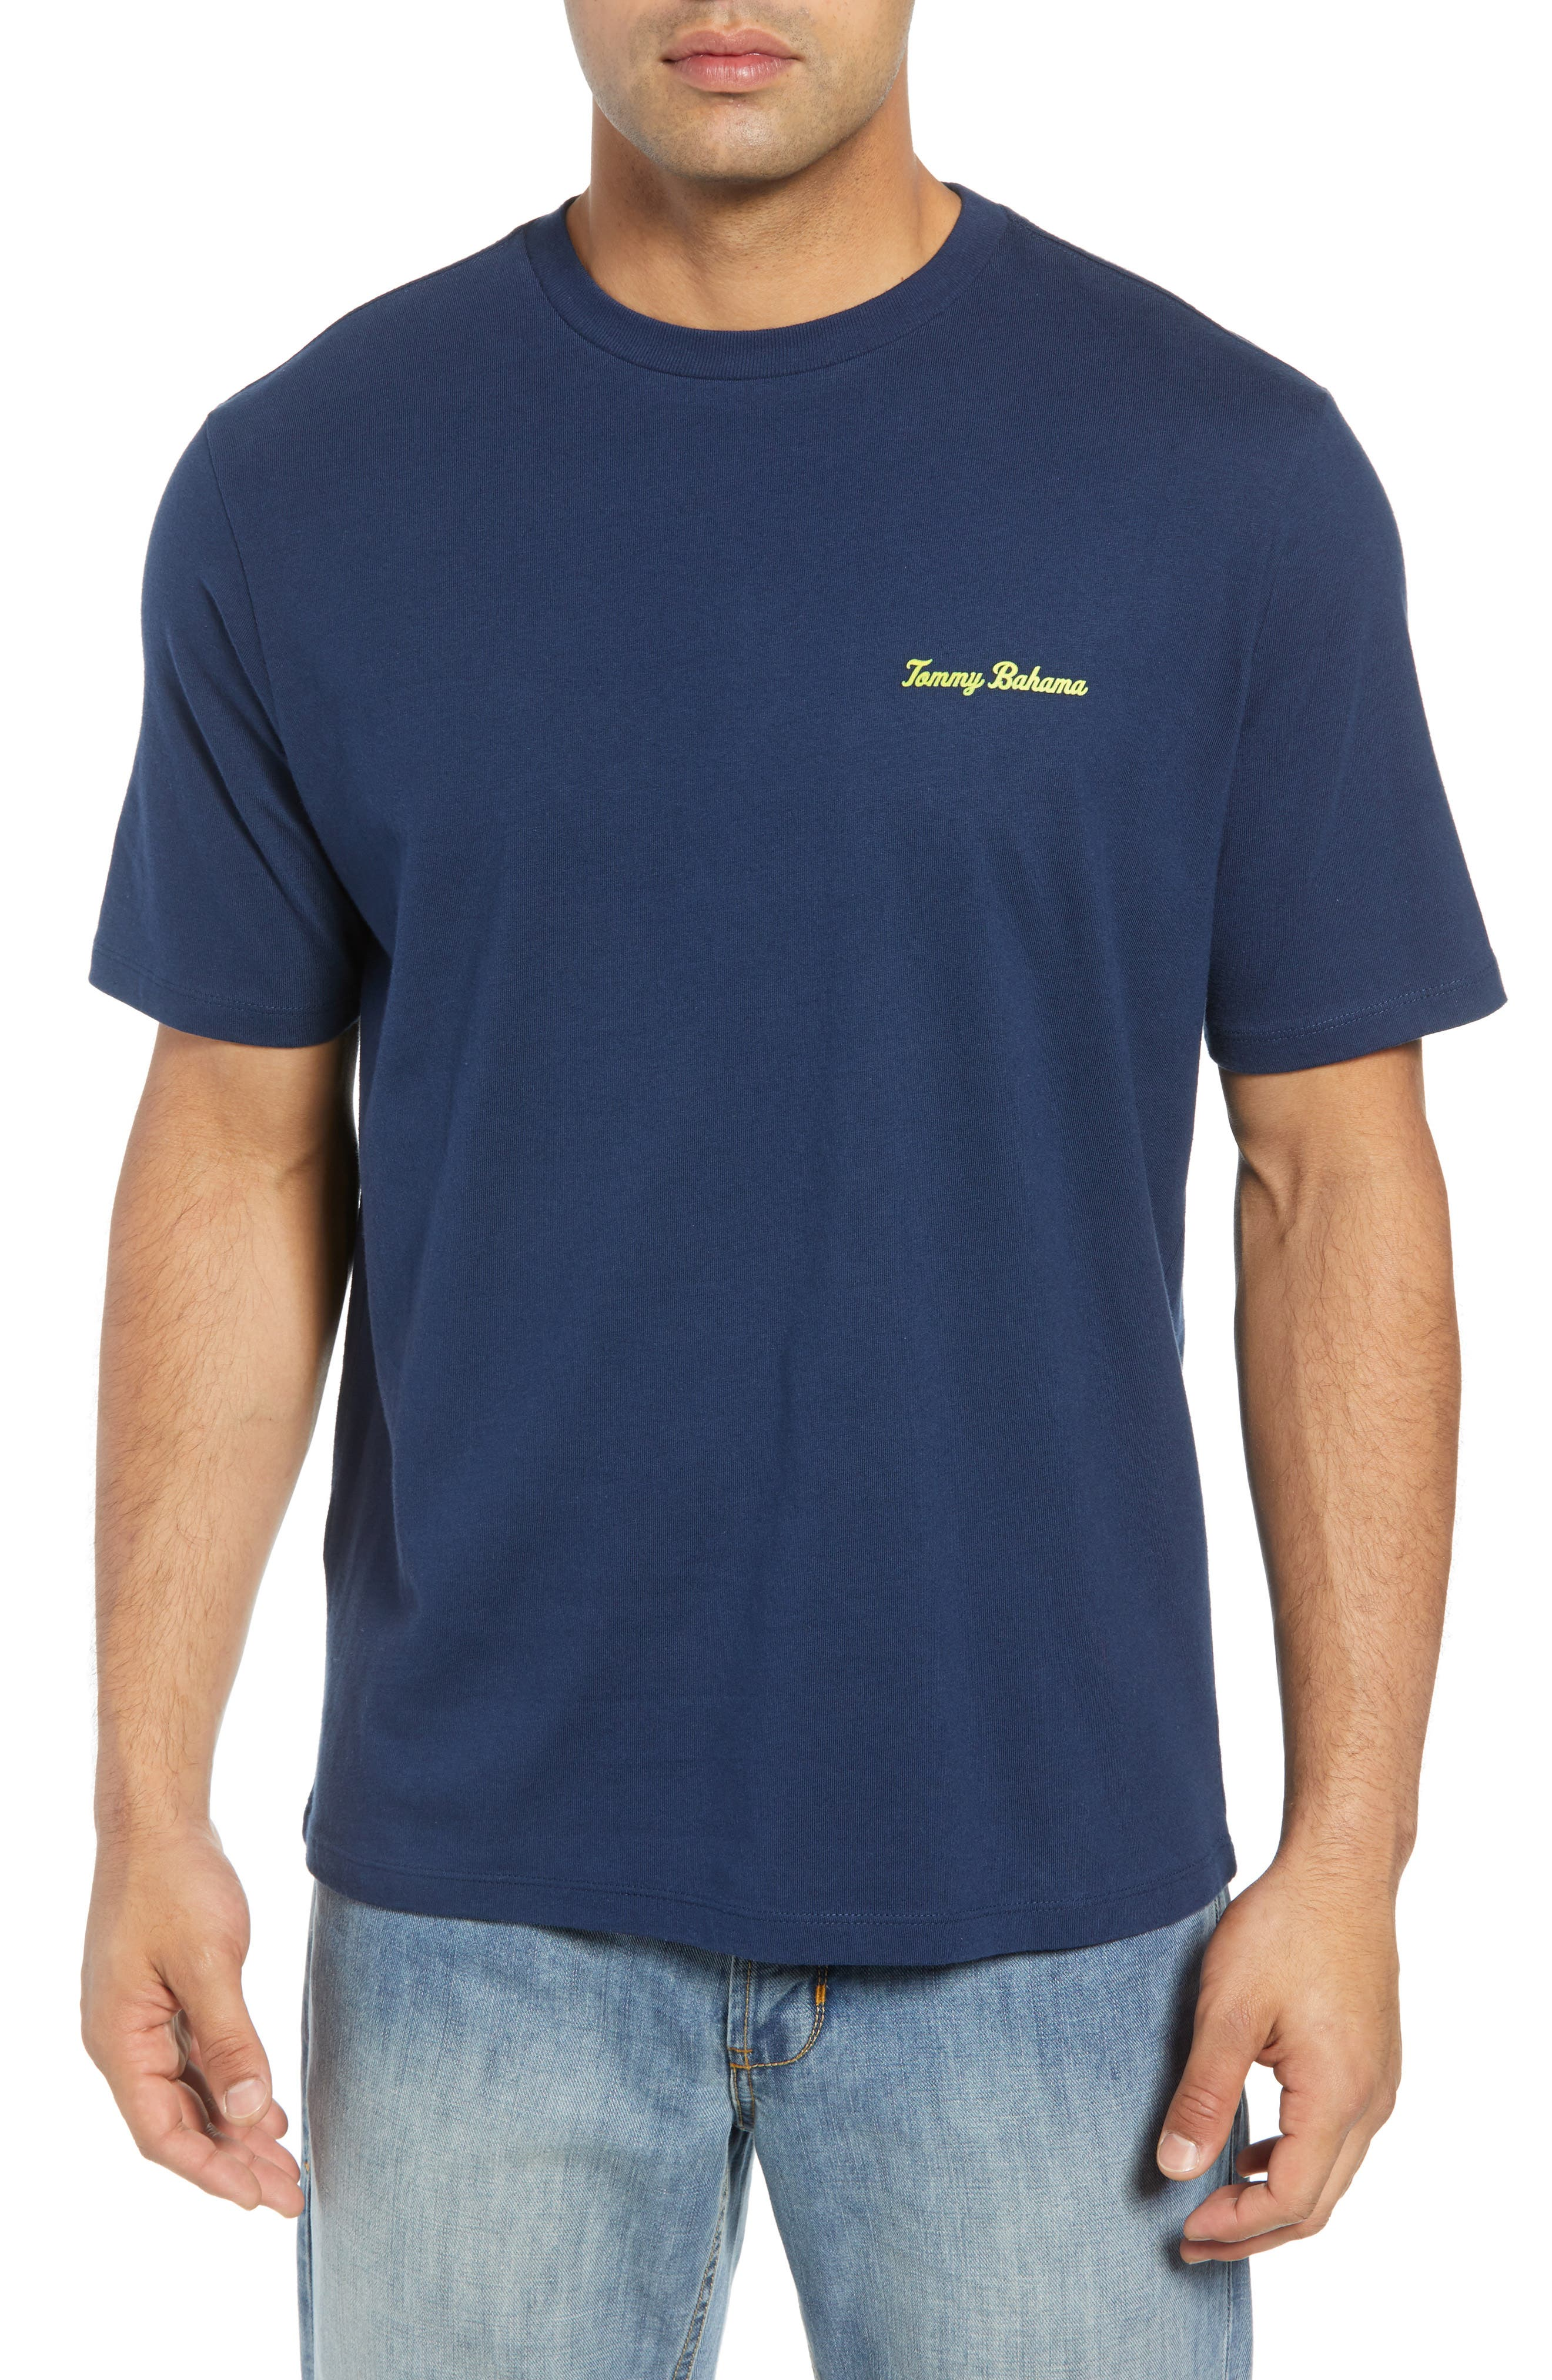 Absolute Parfection T-Shirt,                         Main,                         color, NAVY